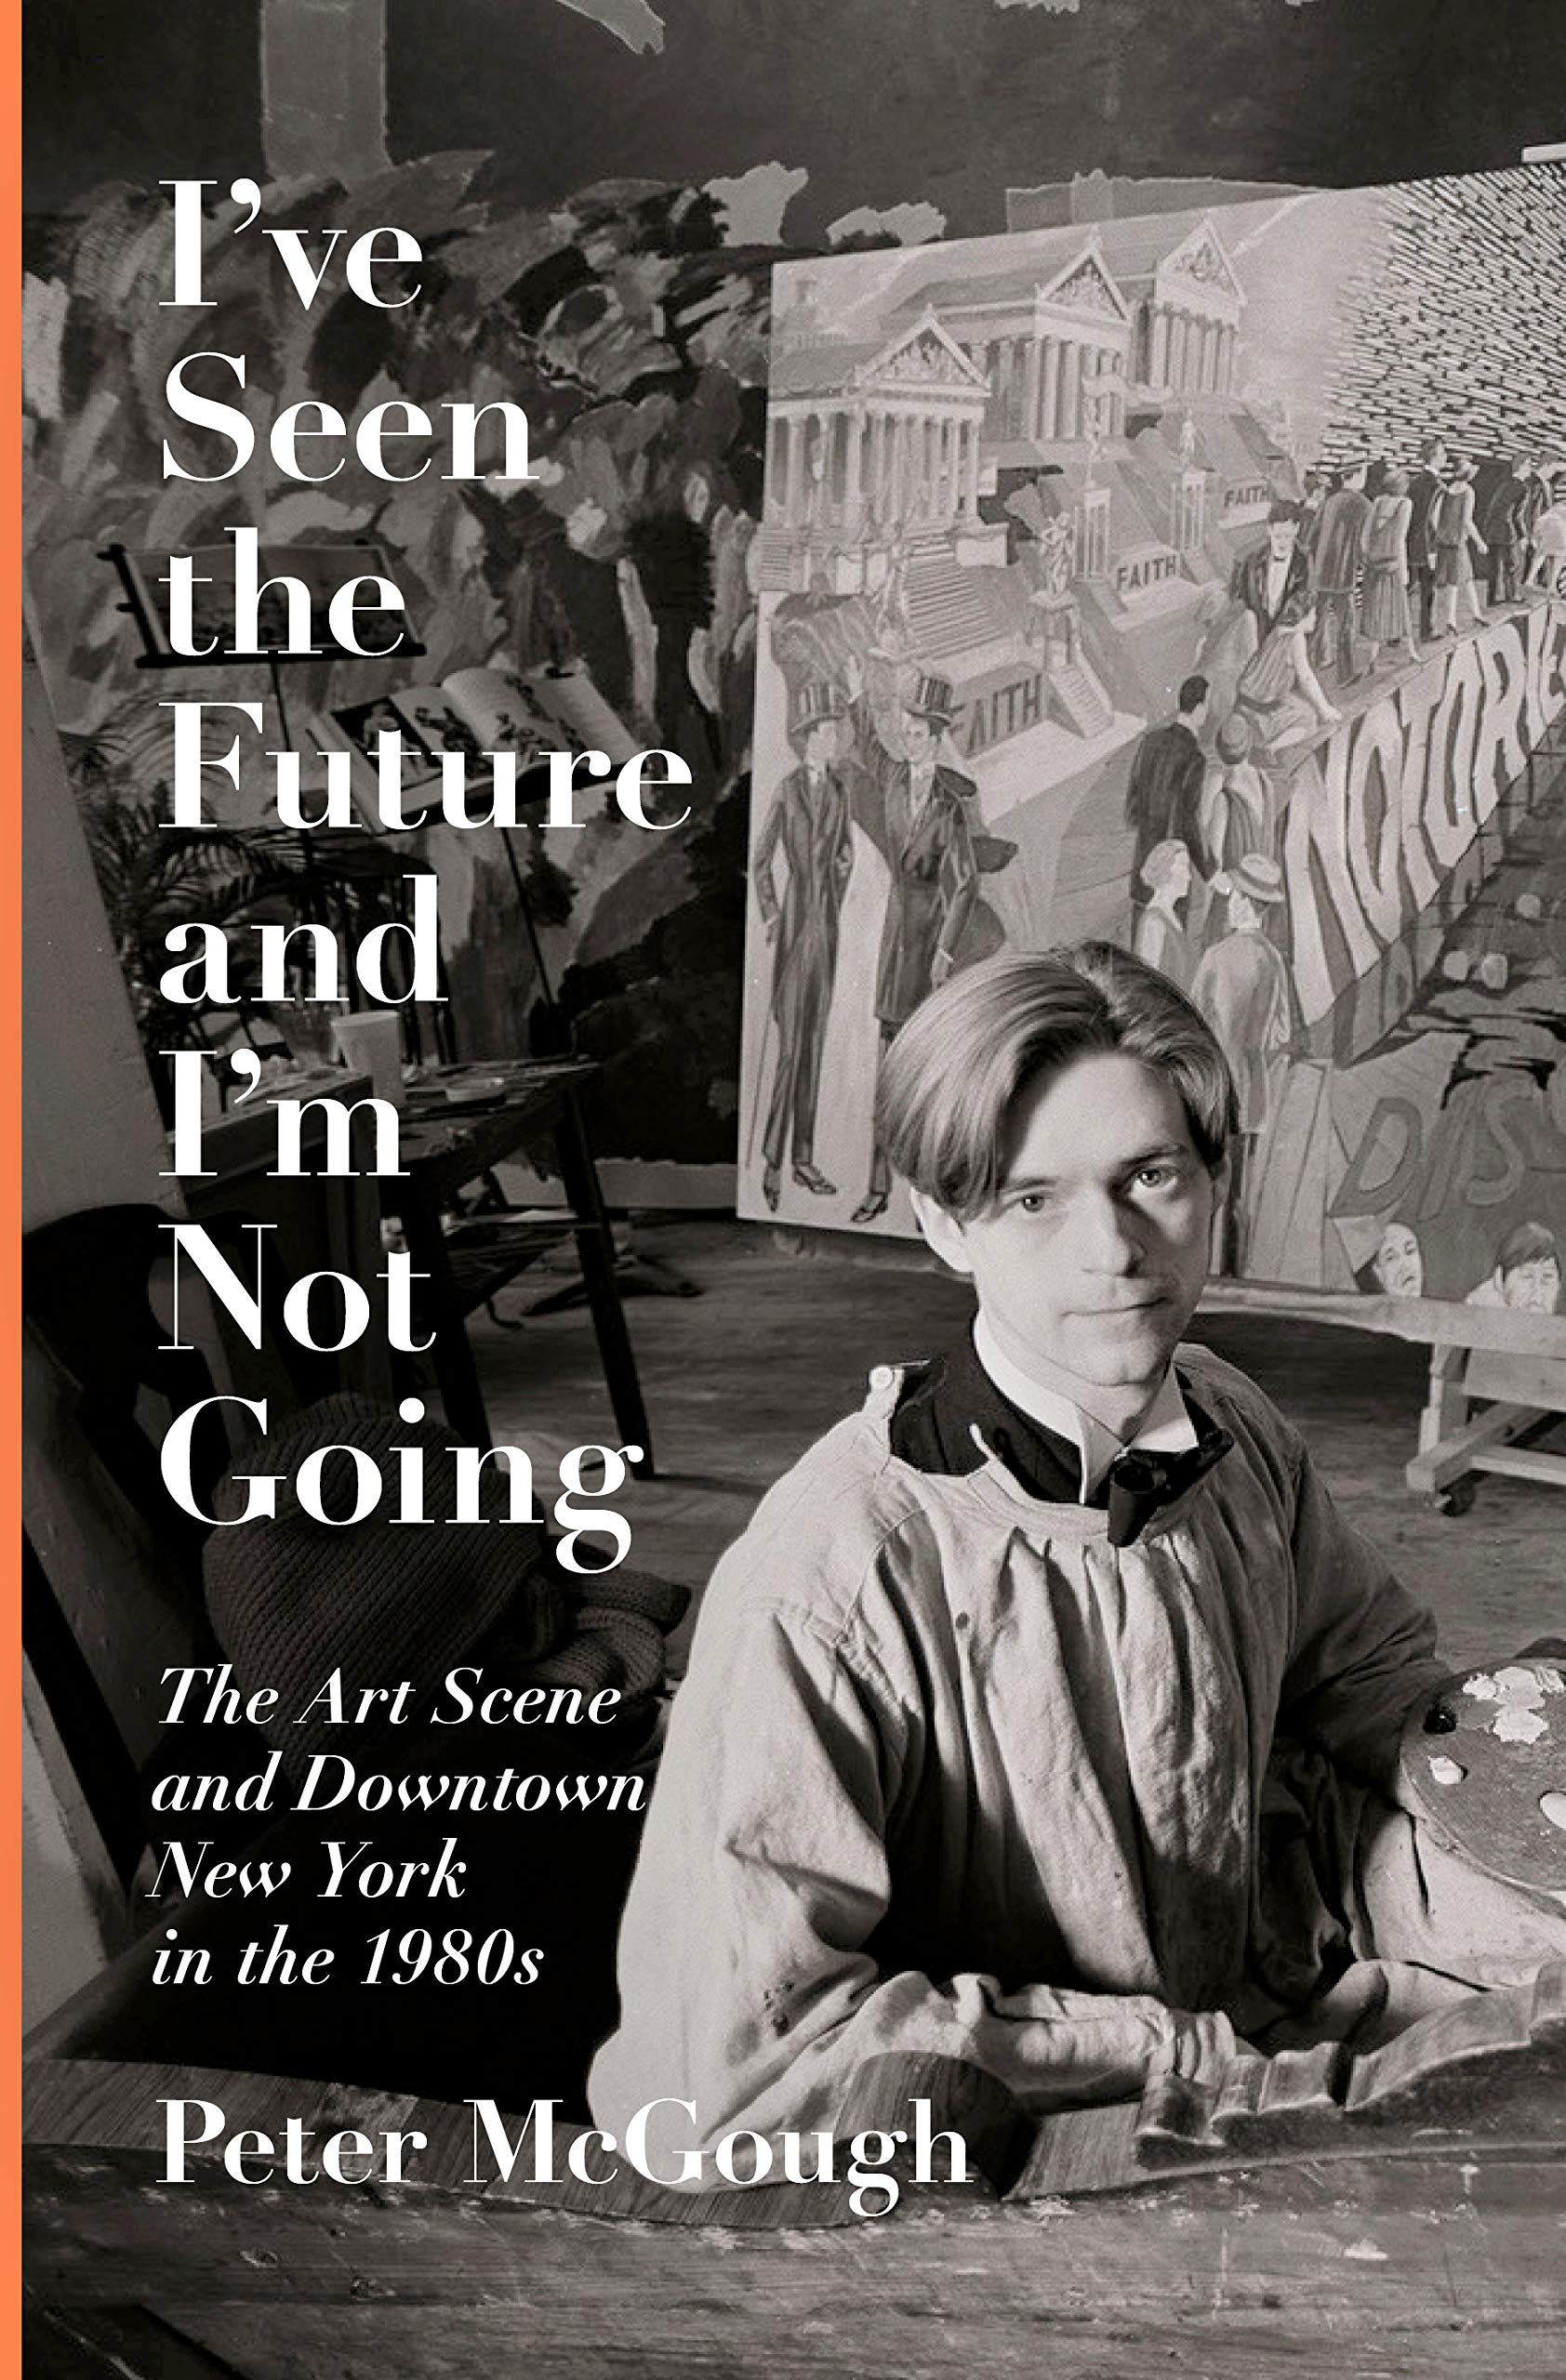 Book Launch: I've Seen The Future and I'm Not Going by Peter McGough in conversation with Christopher Bollen (Brooklyn Book Festival Bookends Event)